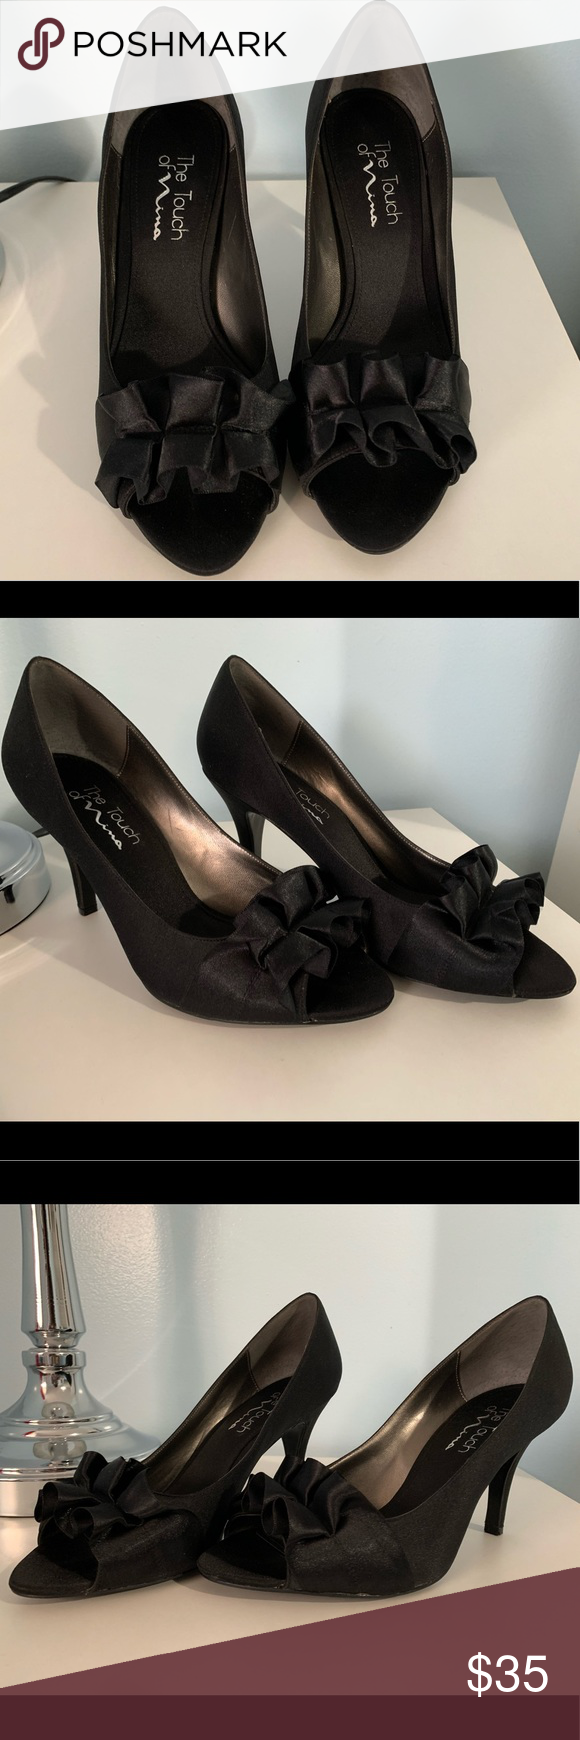 Touch of NiNa Black Satin Pumps Size 7